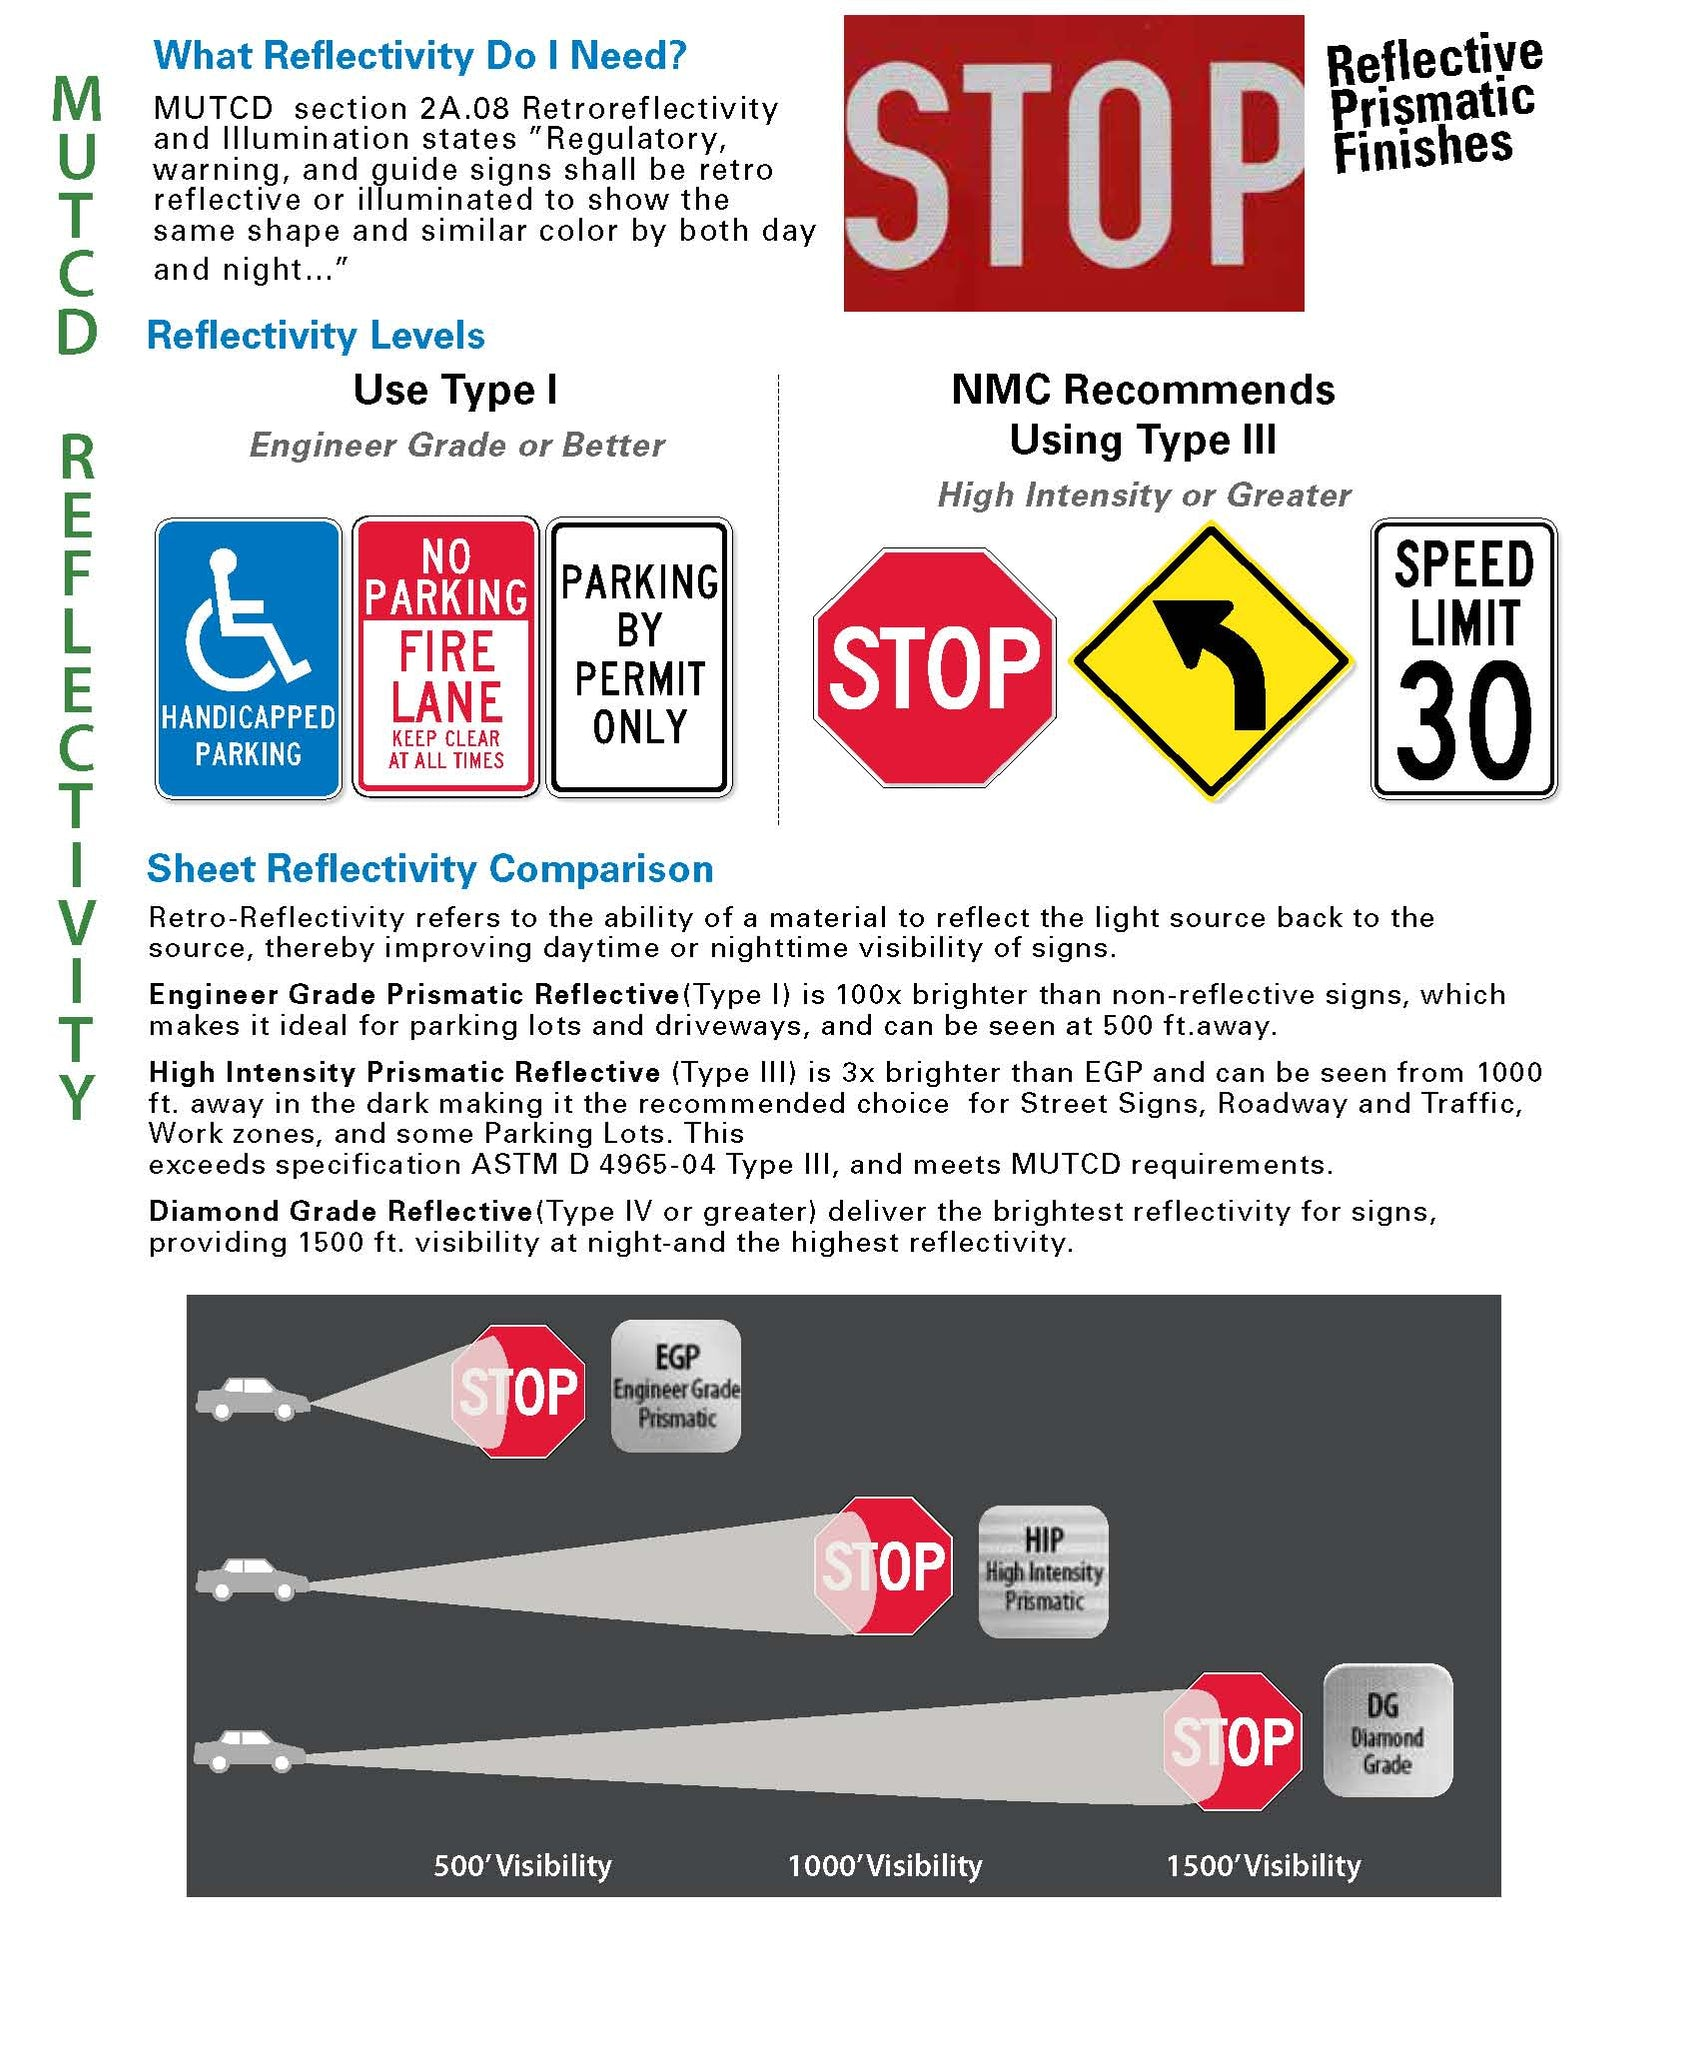 MUTCD Reflective - What Reflective Do I Need